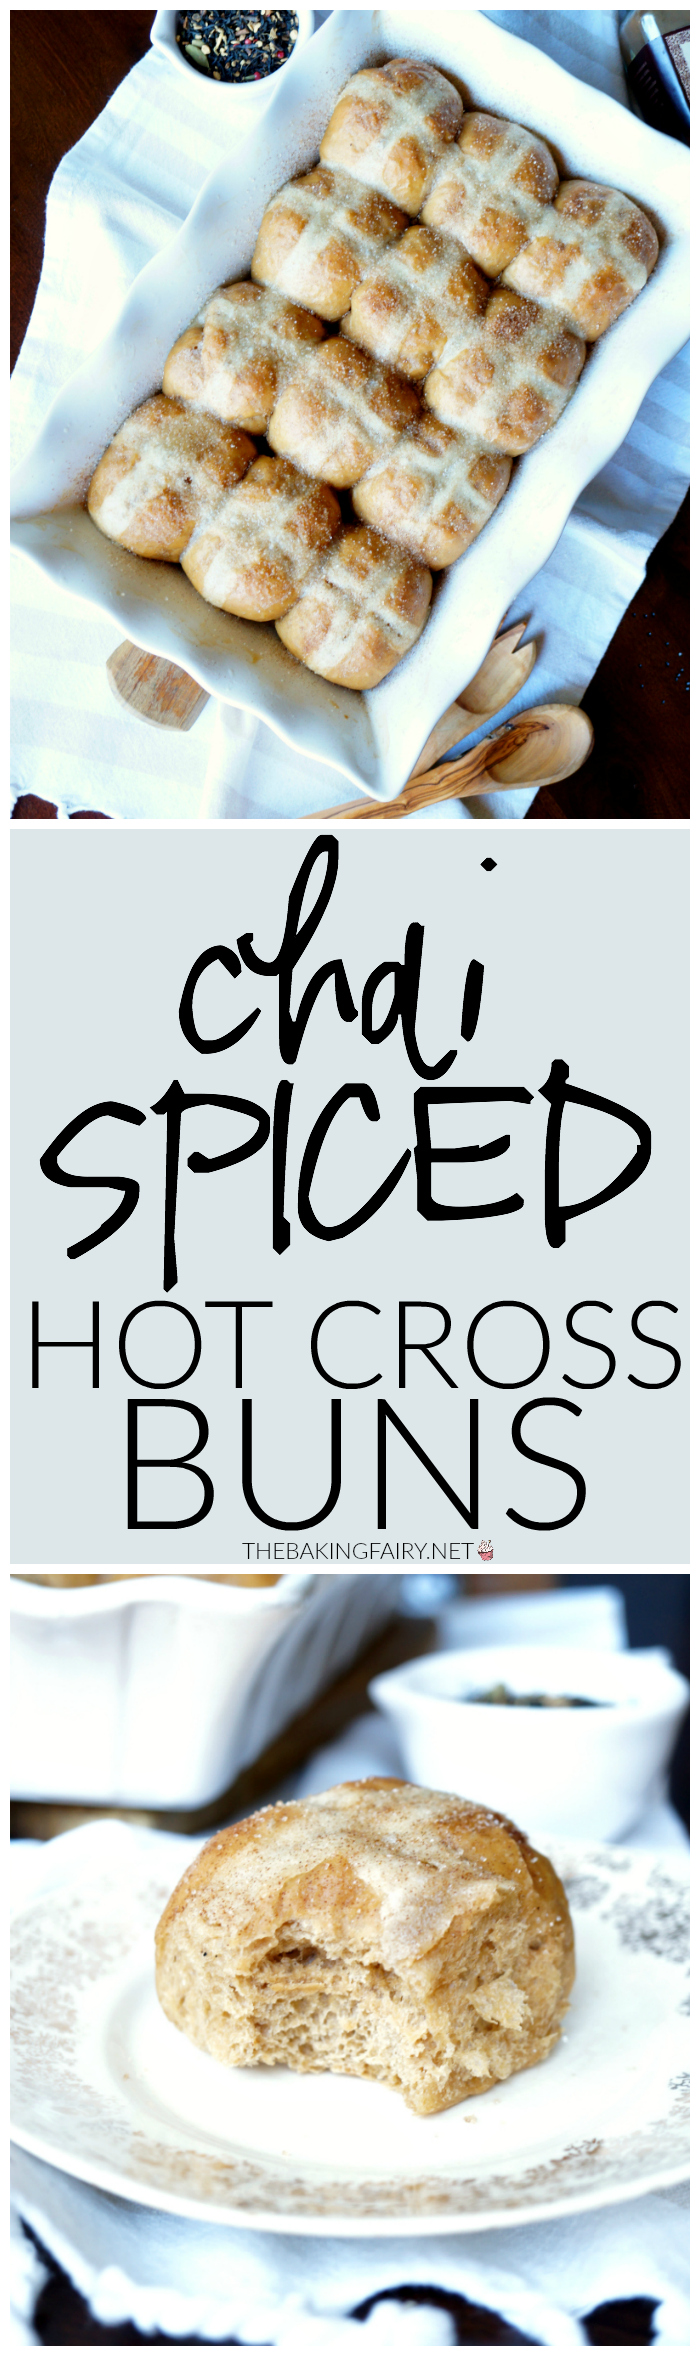 chai spiced hot cross buns | The Baking Fairy